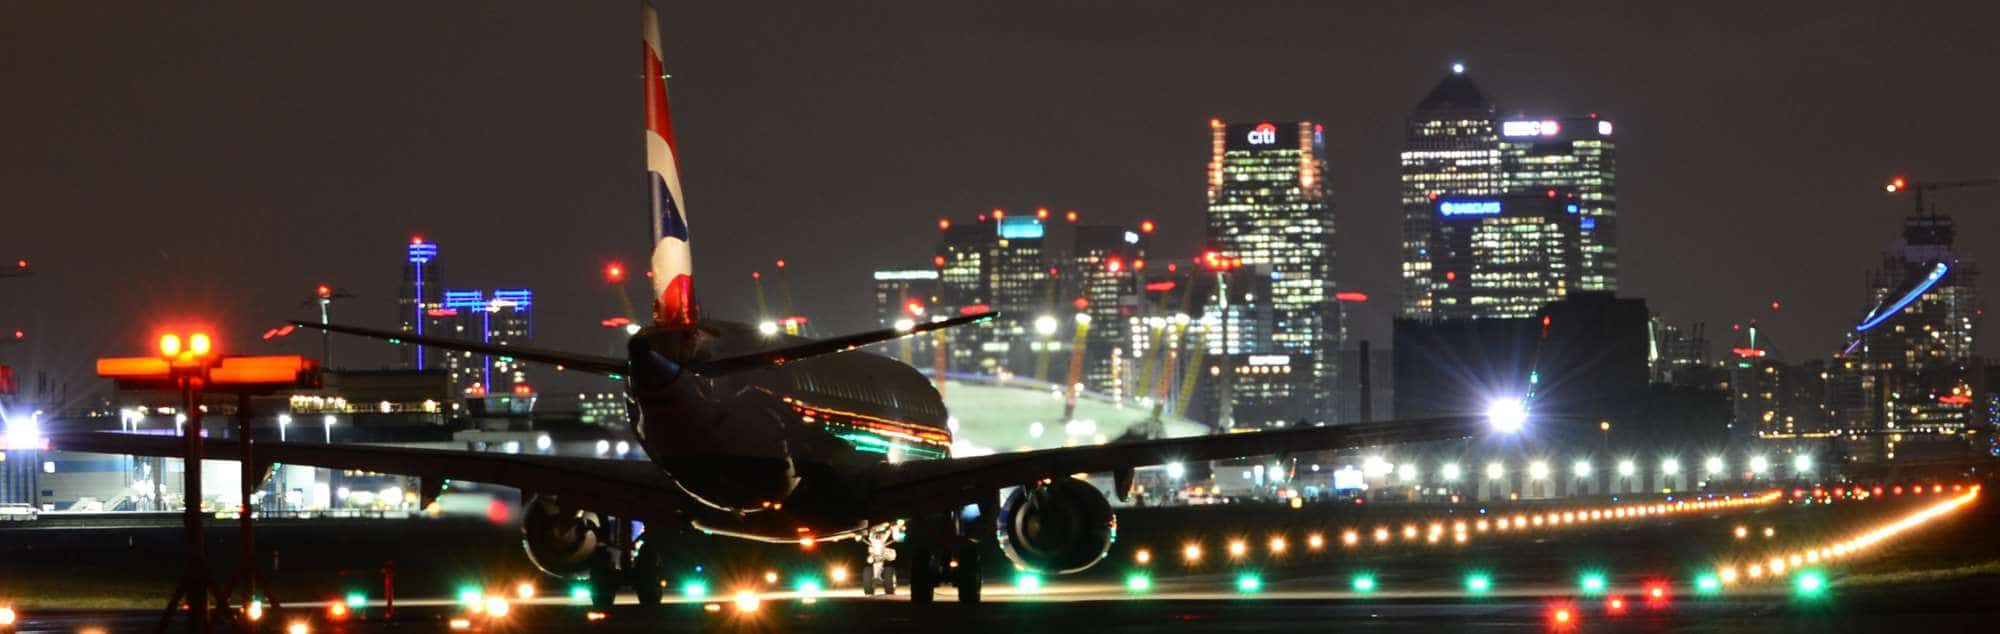 Airport london-city-lcy